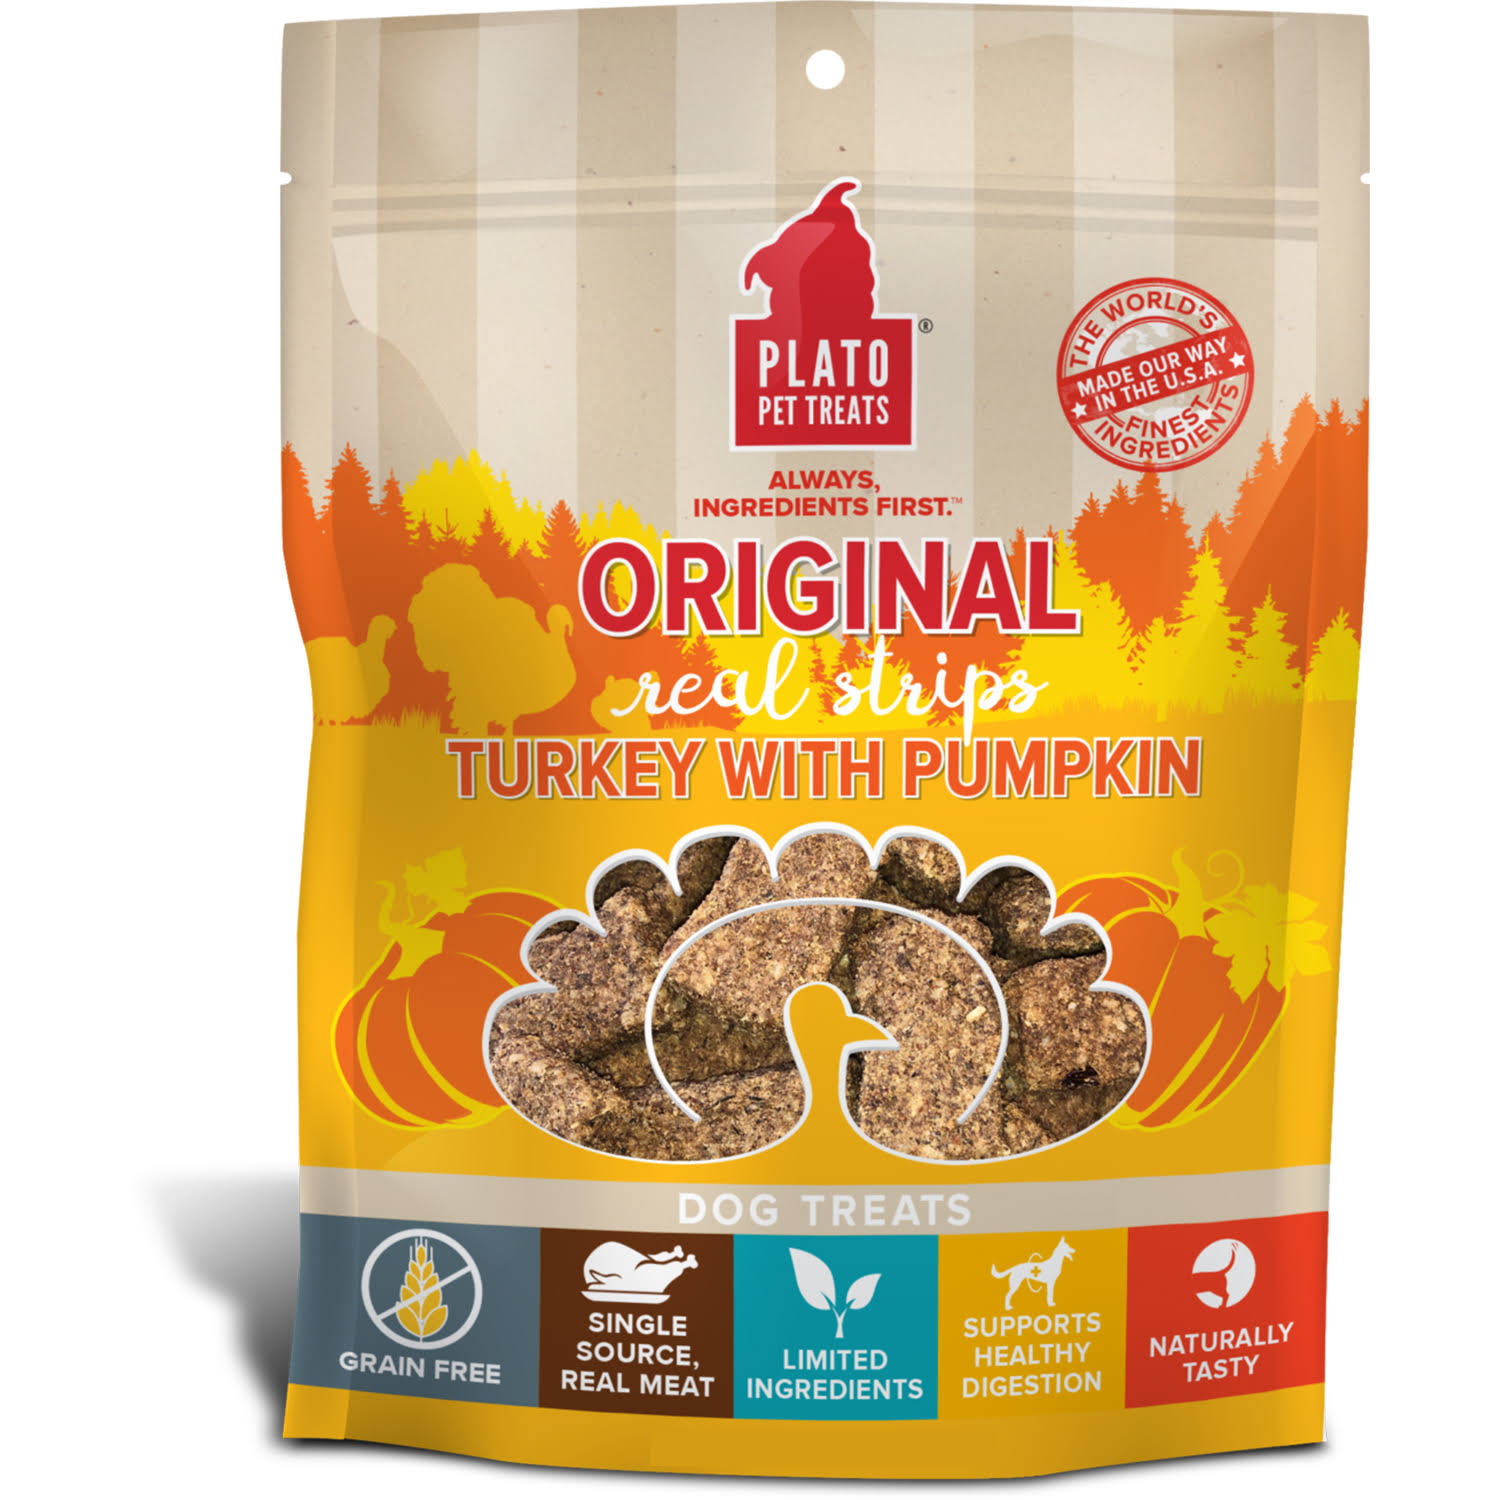 Plato Real Strips Turkey with Pumpkin Dog Treats 18oz